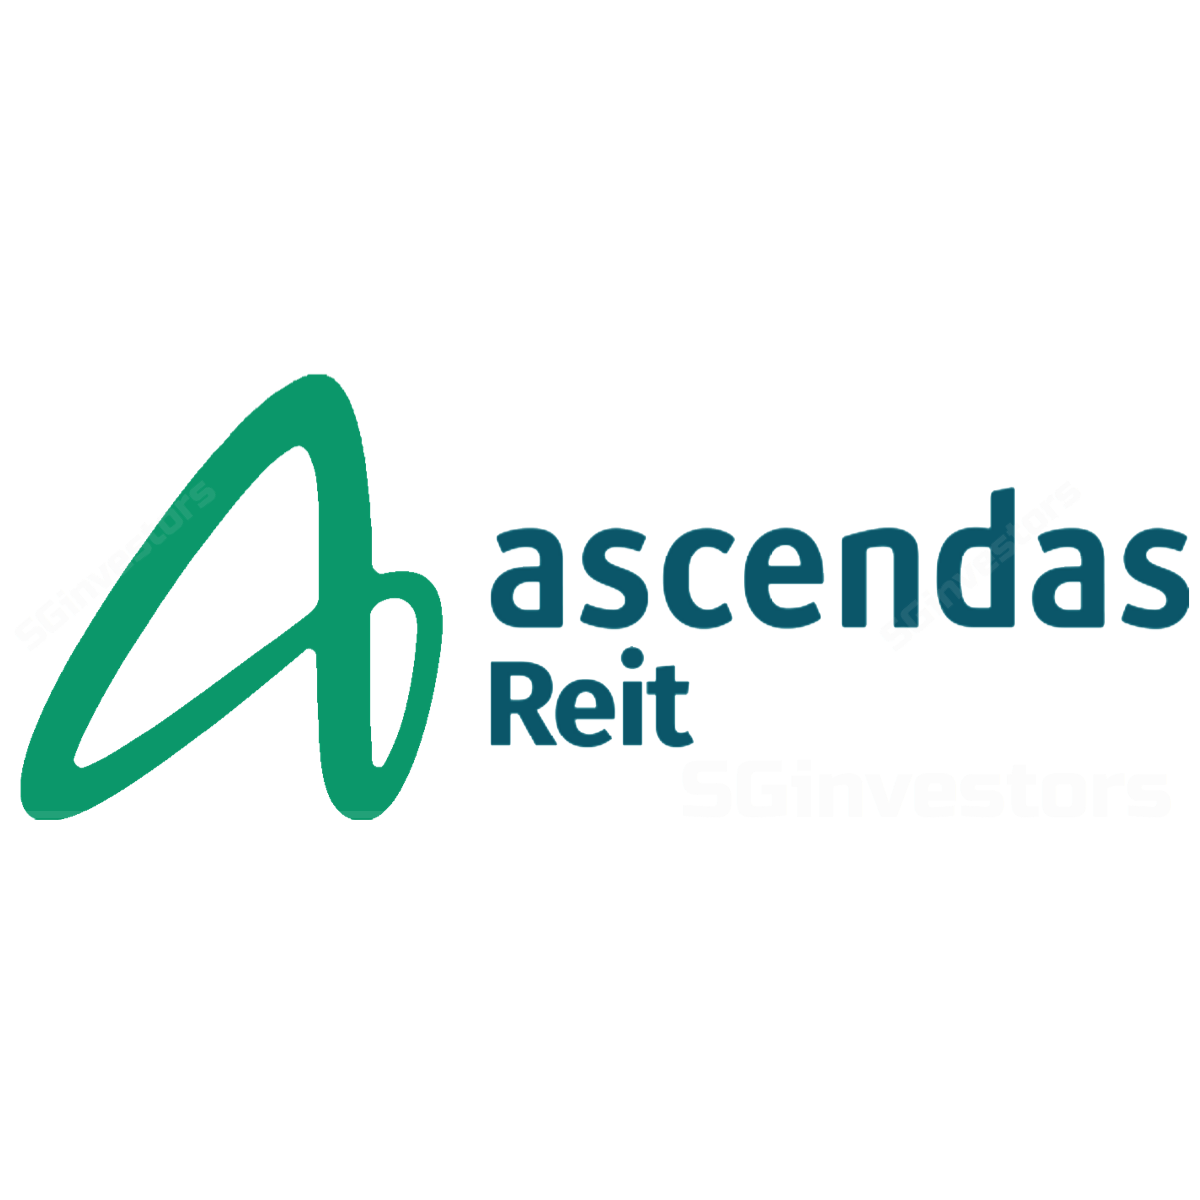 Ascendas REIT - DBS Vickers 2017-01-25: Asset recycling strategies yield higher returns